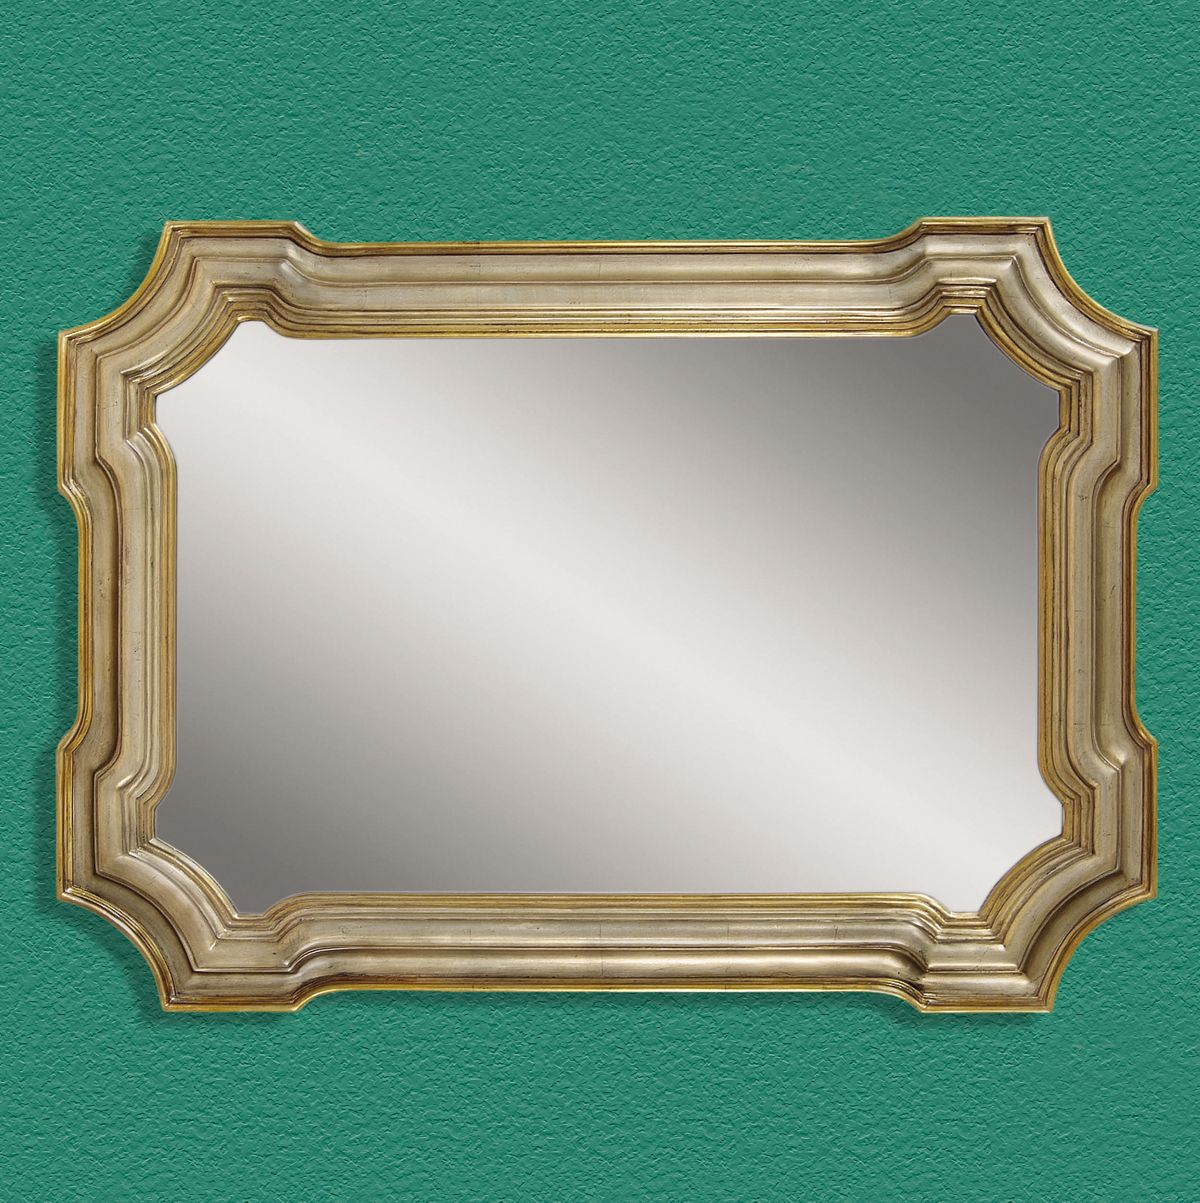 Bassett Old World Angelica Wall Mirror in Silver and Gold